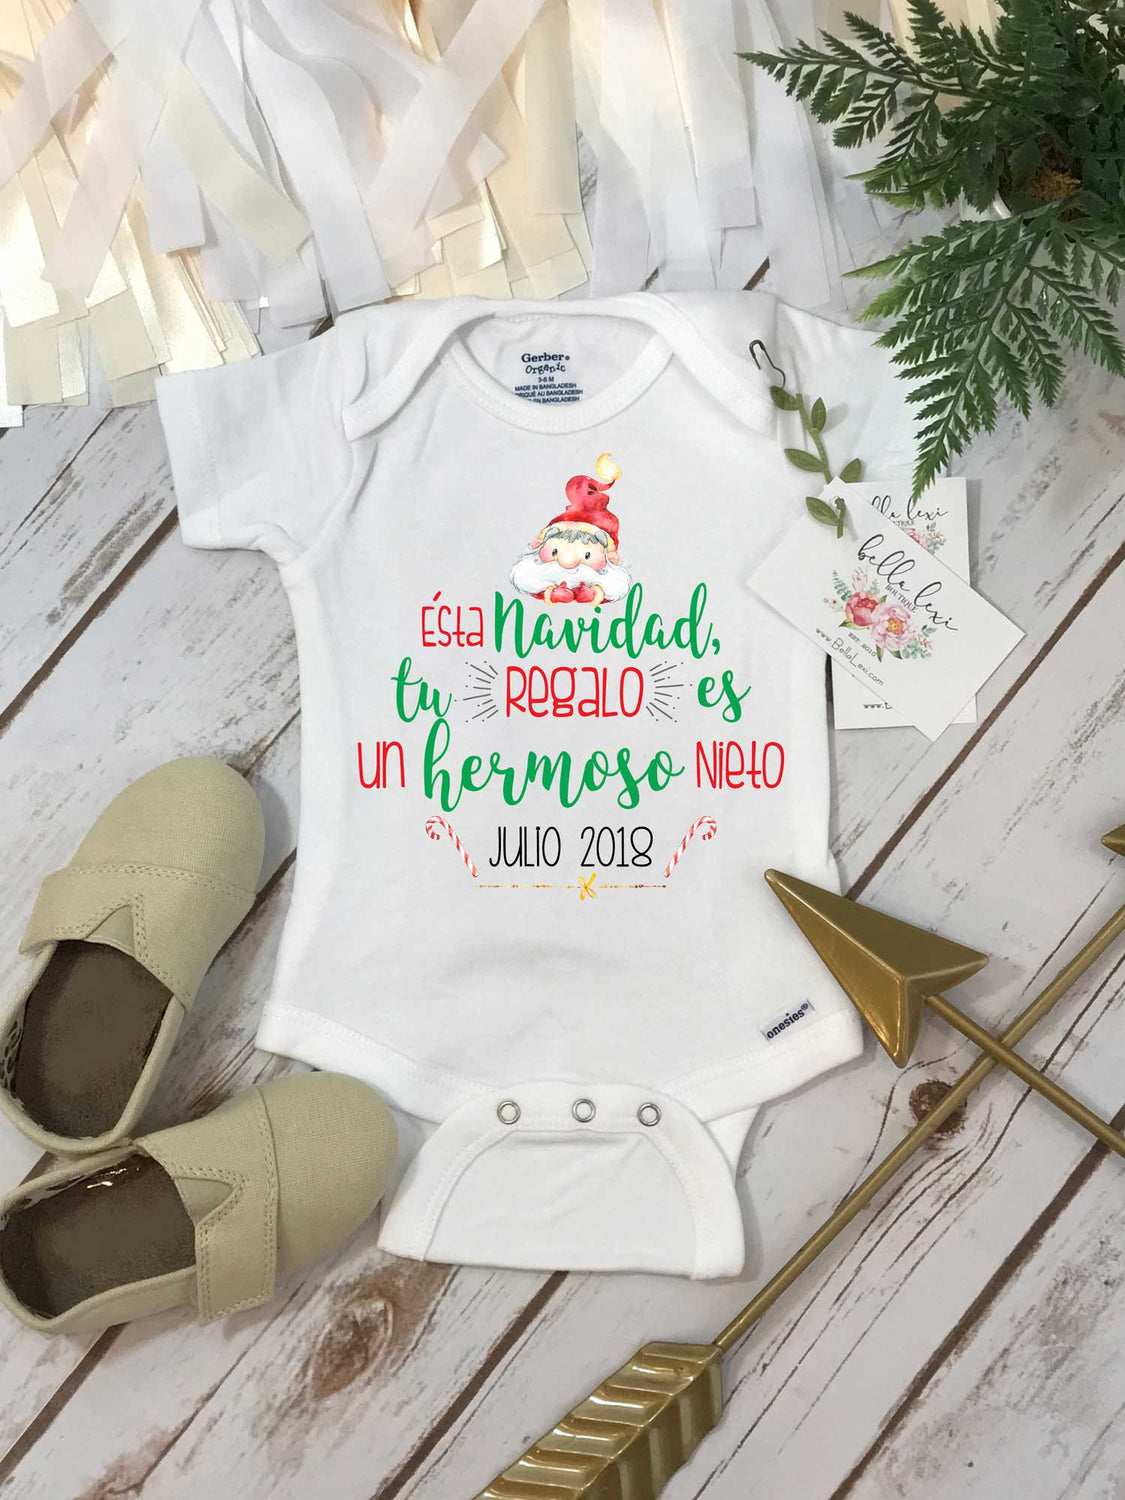 Spanish Pregnancy Reveal, Abuela y Abuelo, Pregnancy Announcement, Spanish Baby Reveal, Sorpresa Bebe en Camino - Bella Lexi Boutique